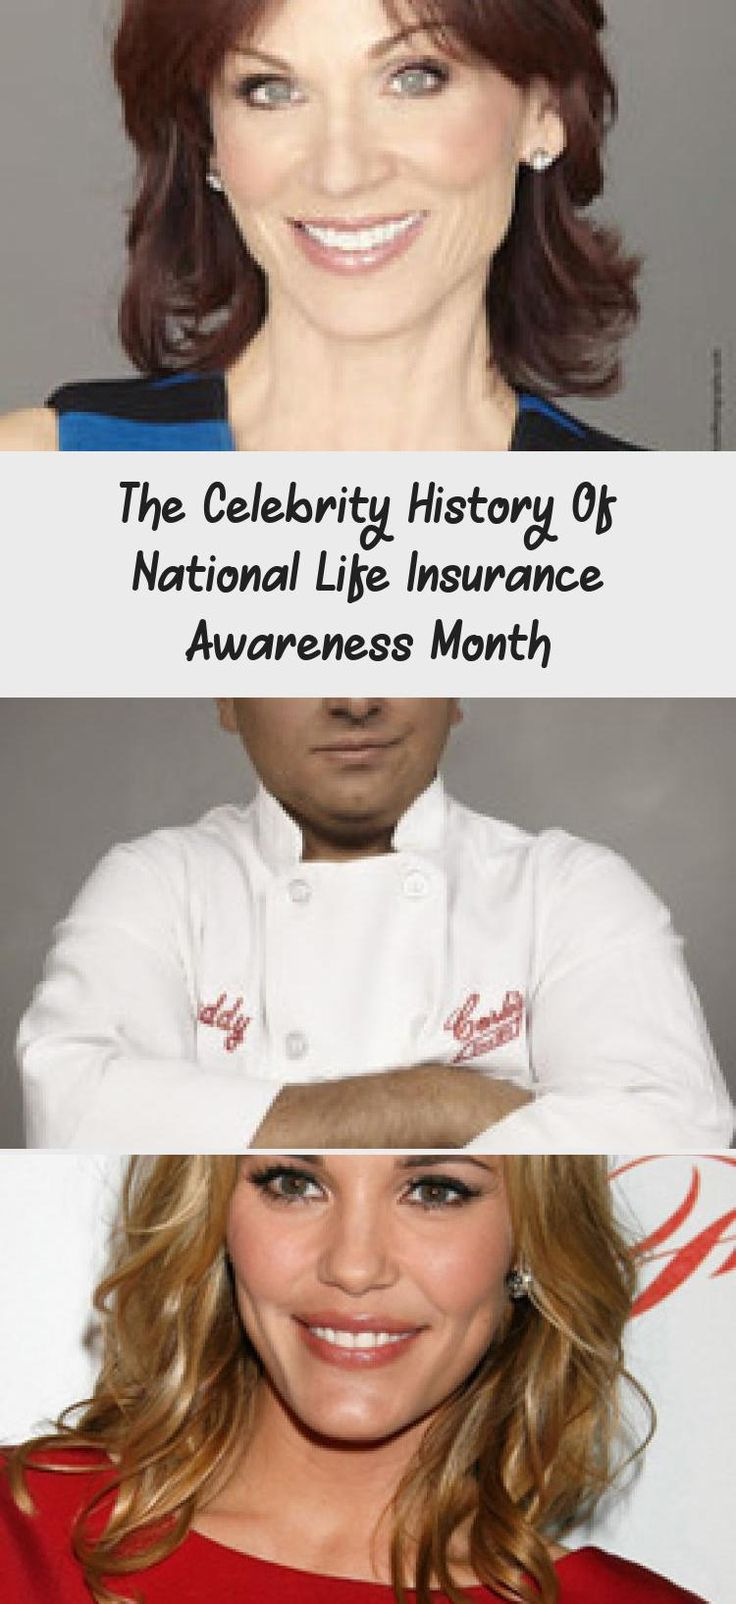 The Celebrity History Of National Life Insurance Awareness